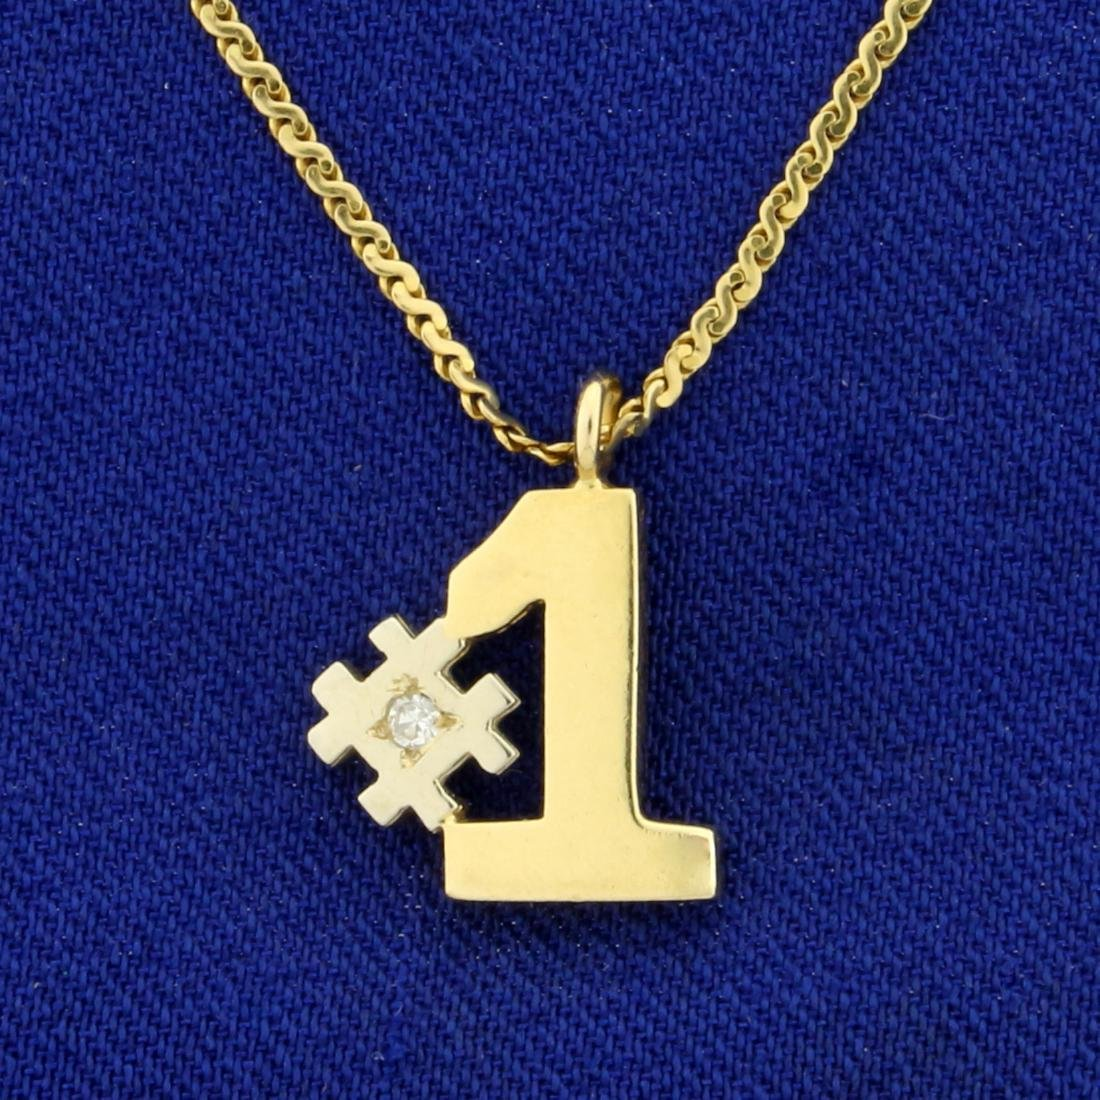 Italian Made Diamond #1 Pendant and S-Link Chain in 14K